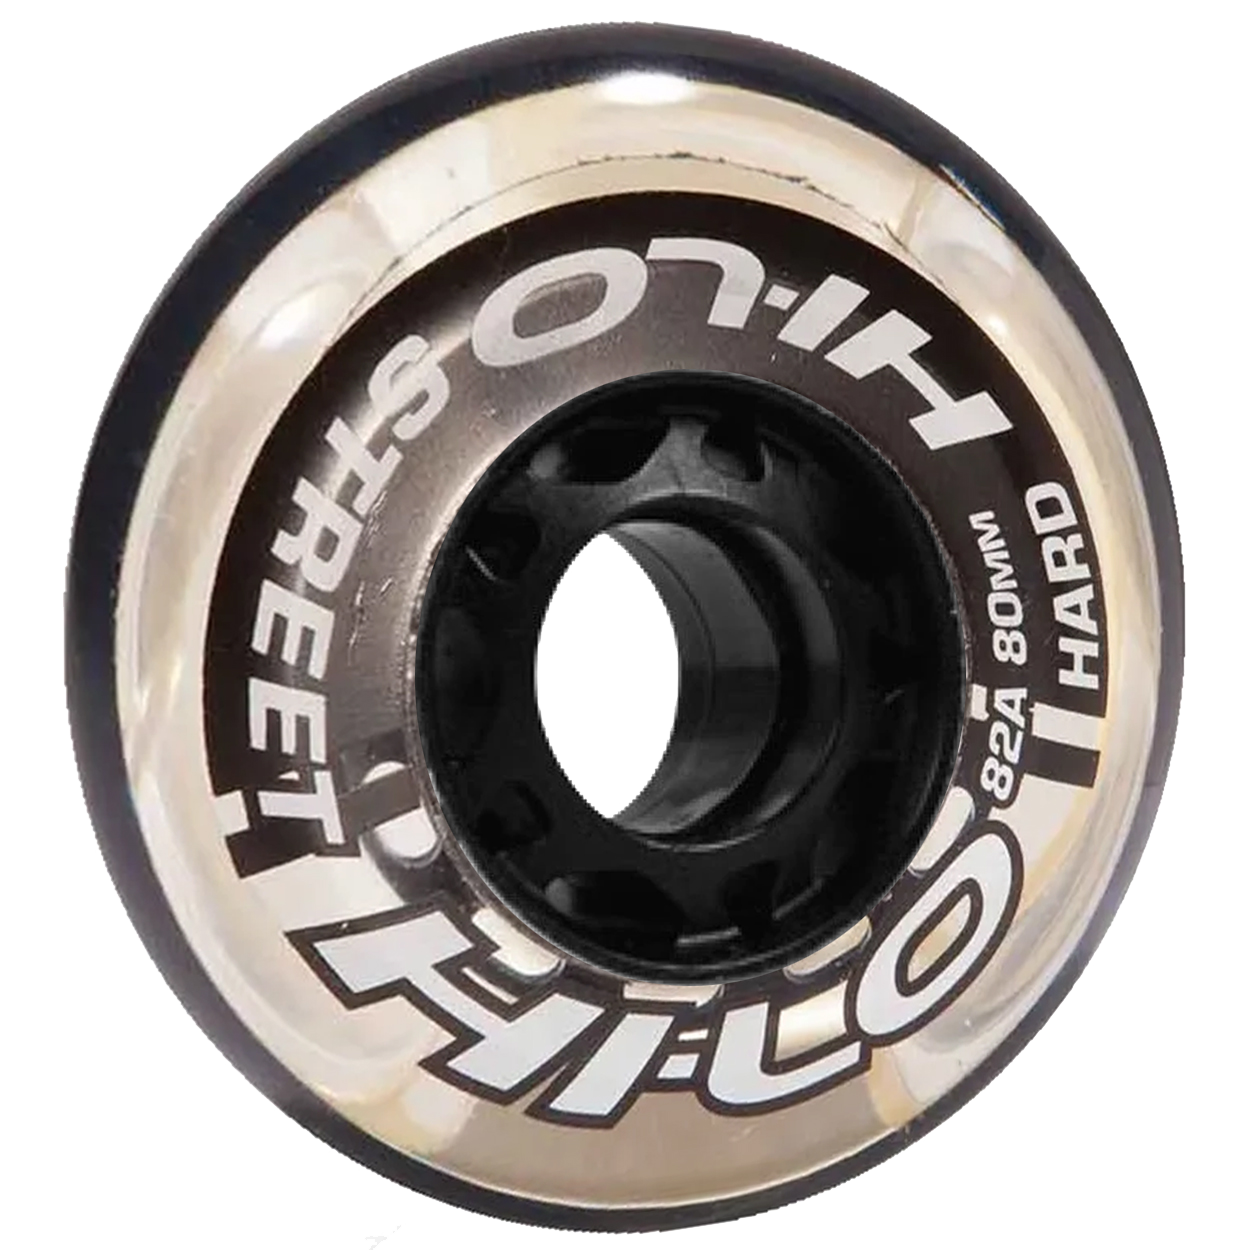 HI-LO STREET ROLLER HOCKEY WHEELS 4PK S16 (OUTDOOR),,Размер M